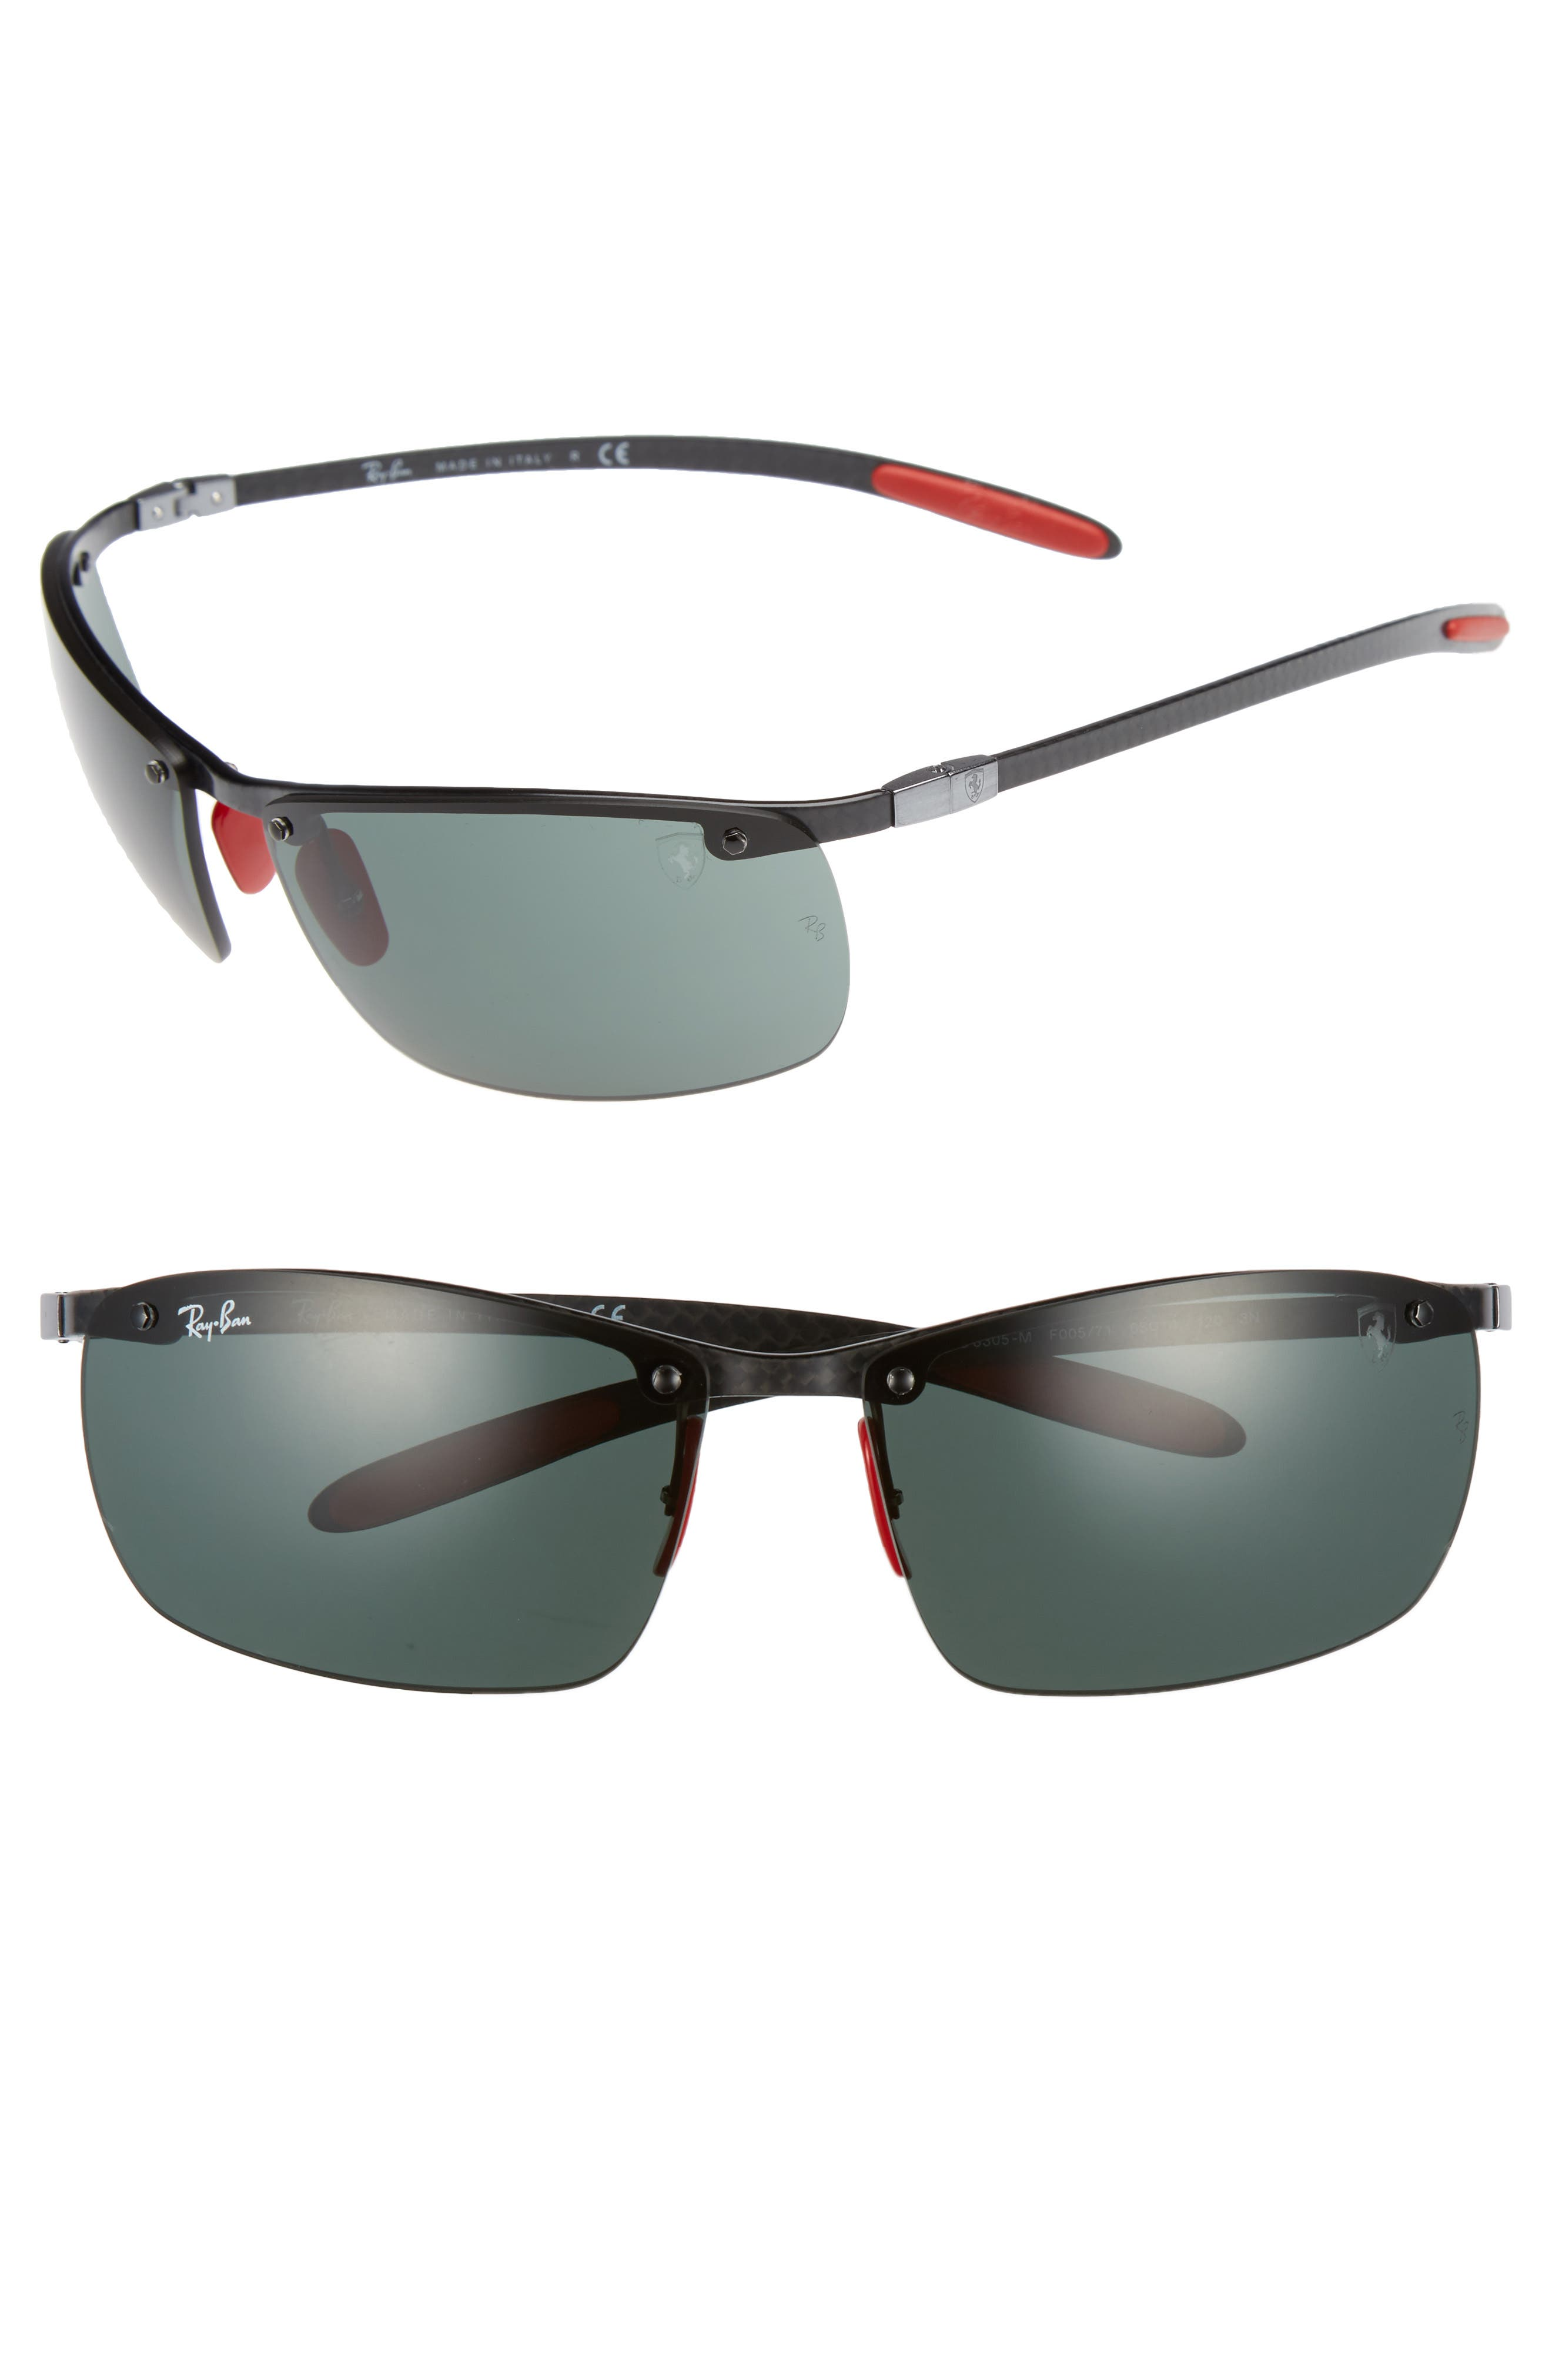 Ray-Ban Sport 64mm Sunglasses